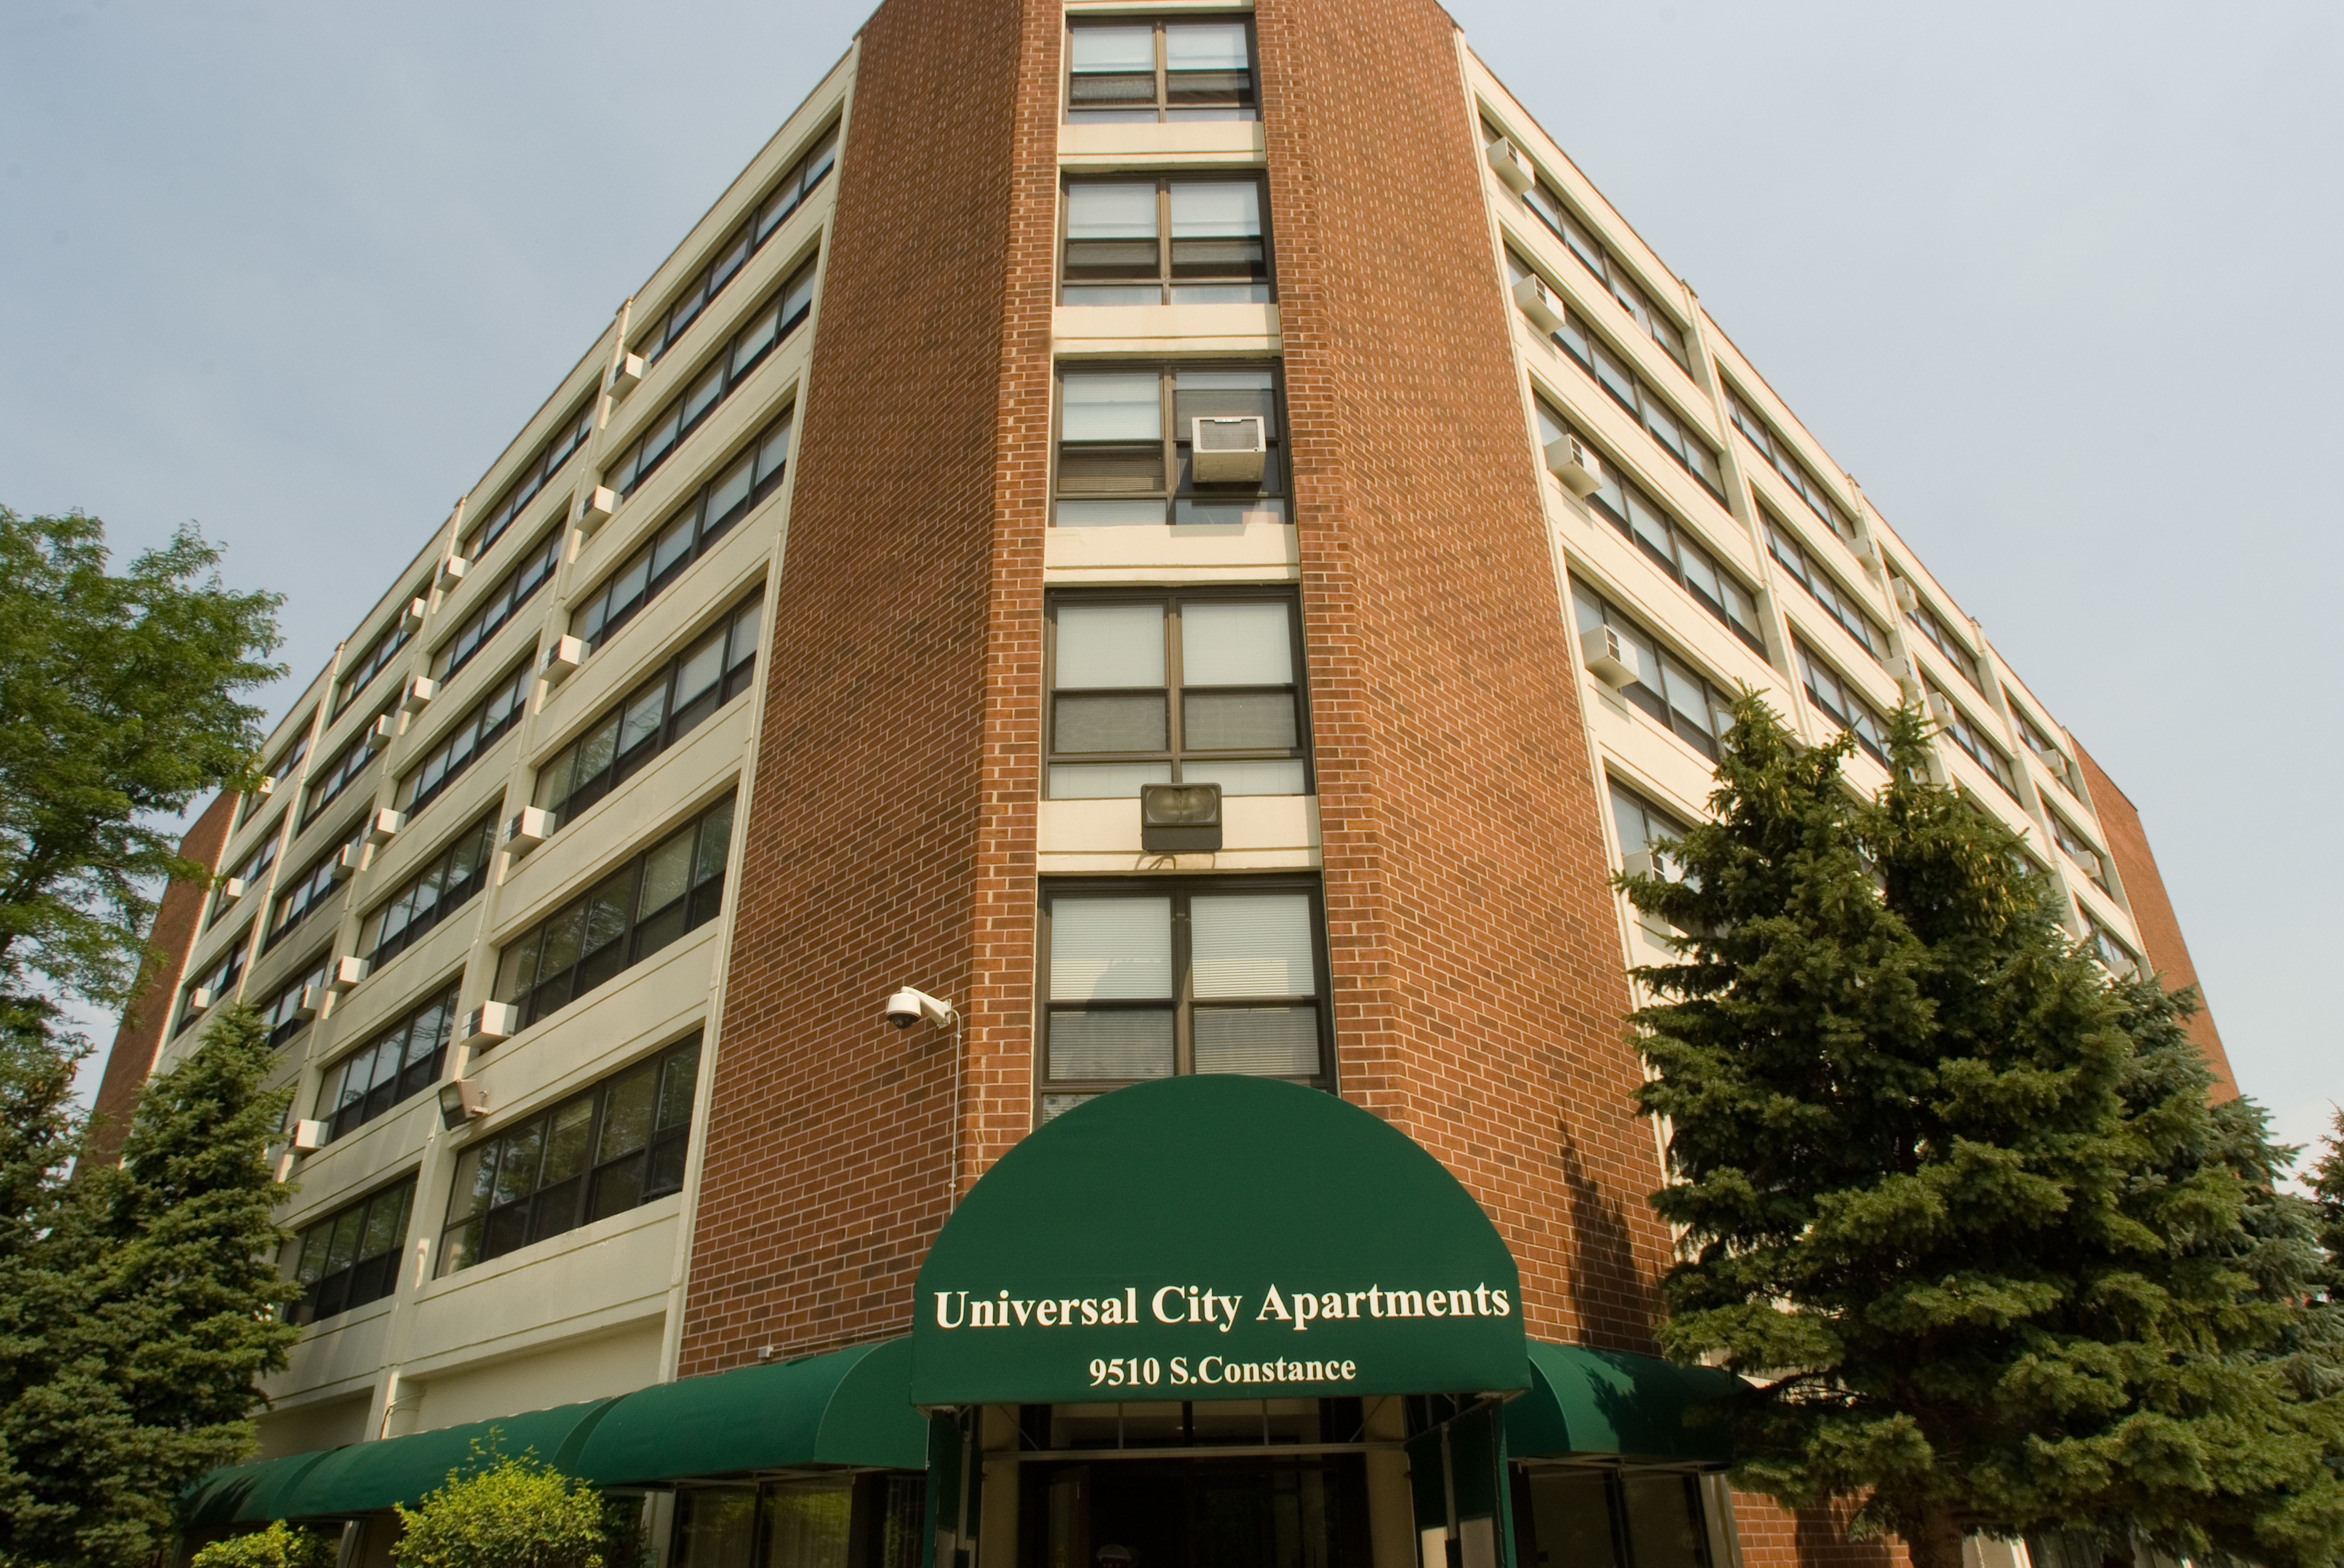 related-corporate-affordable-cut-sheet-properties-universalcityapartments-hero-1-15-19.jpg